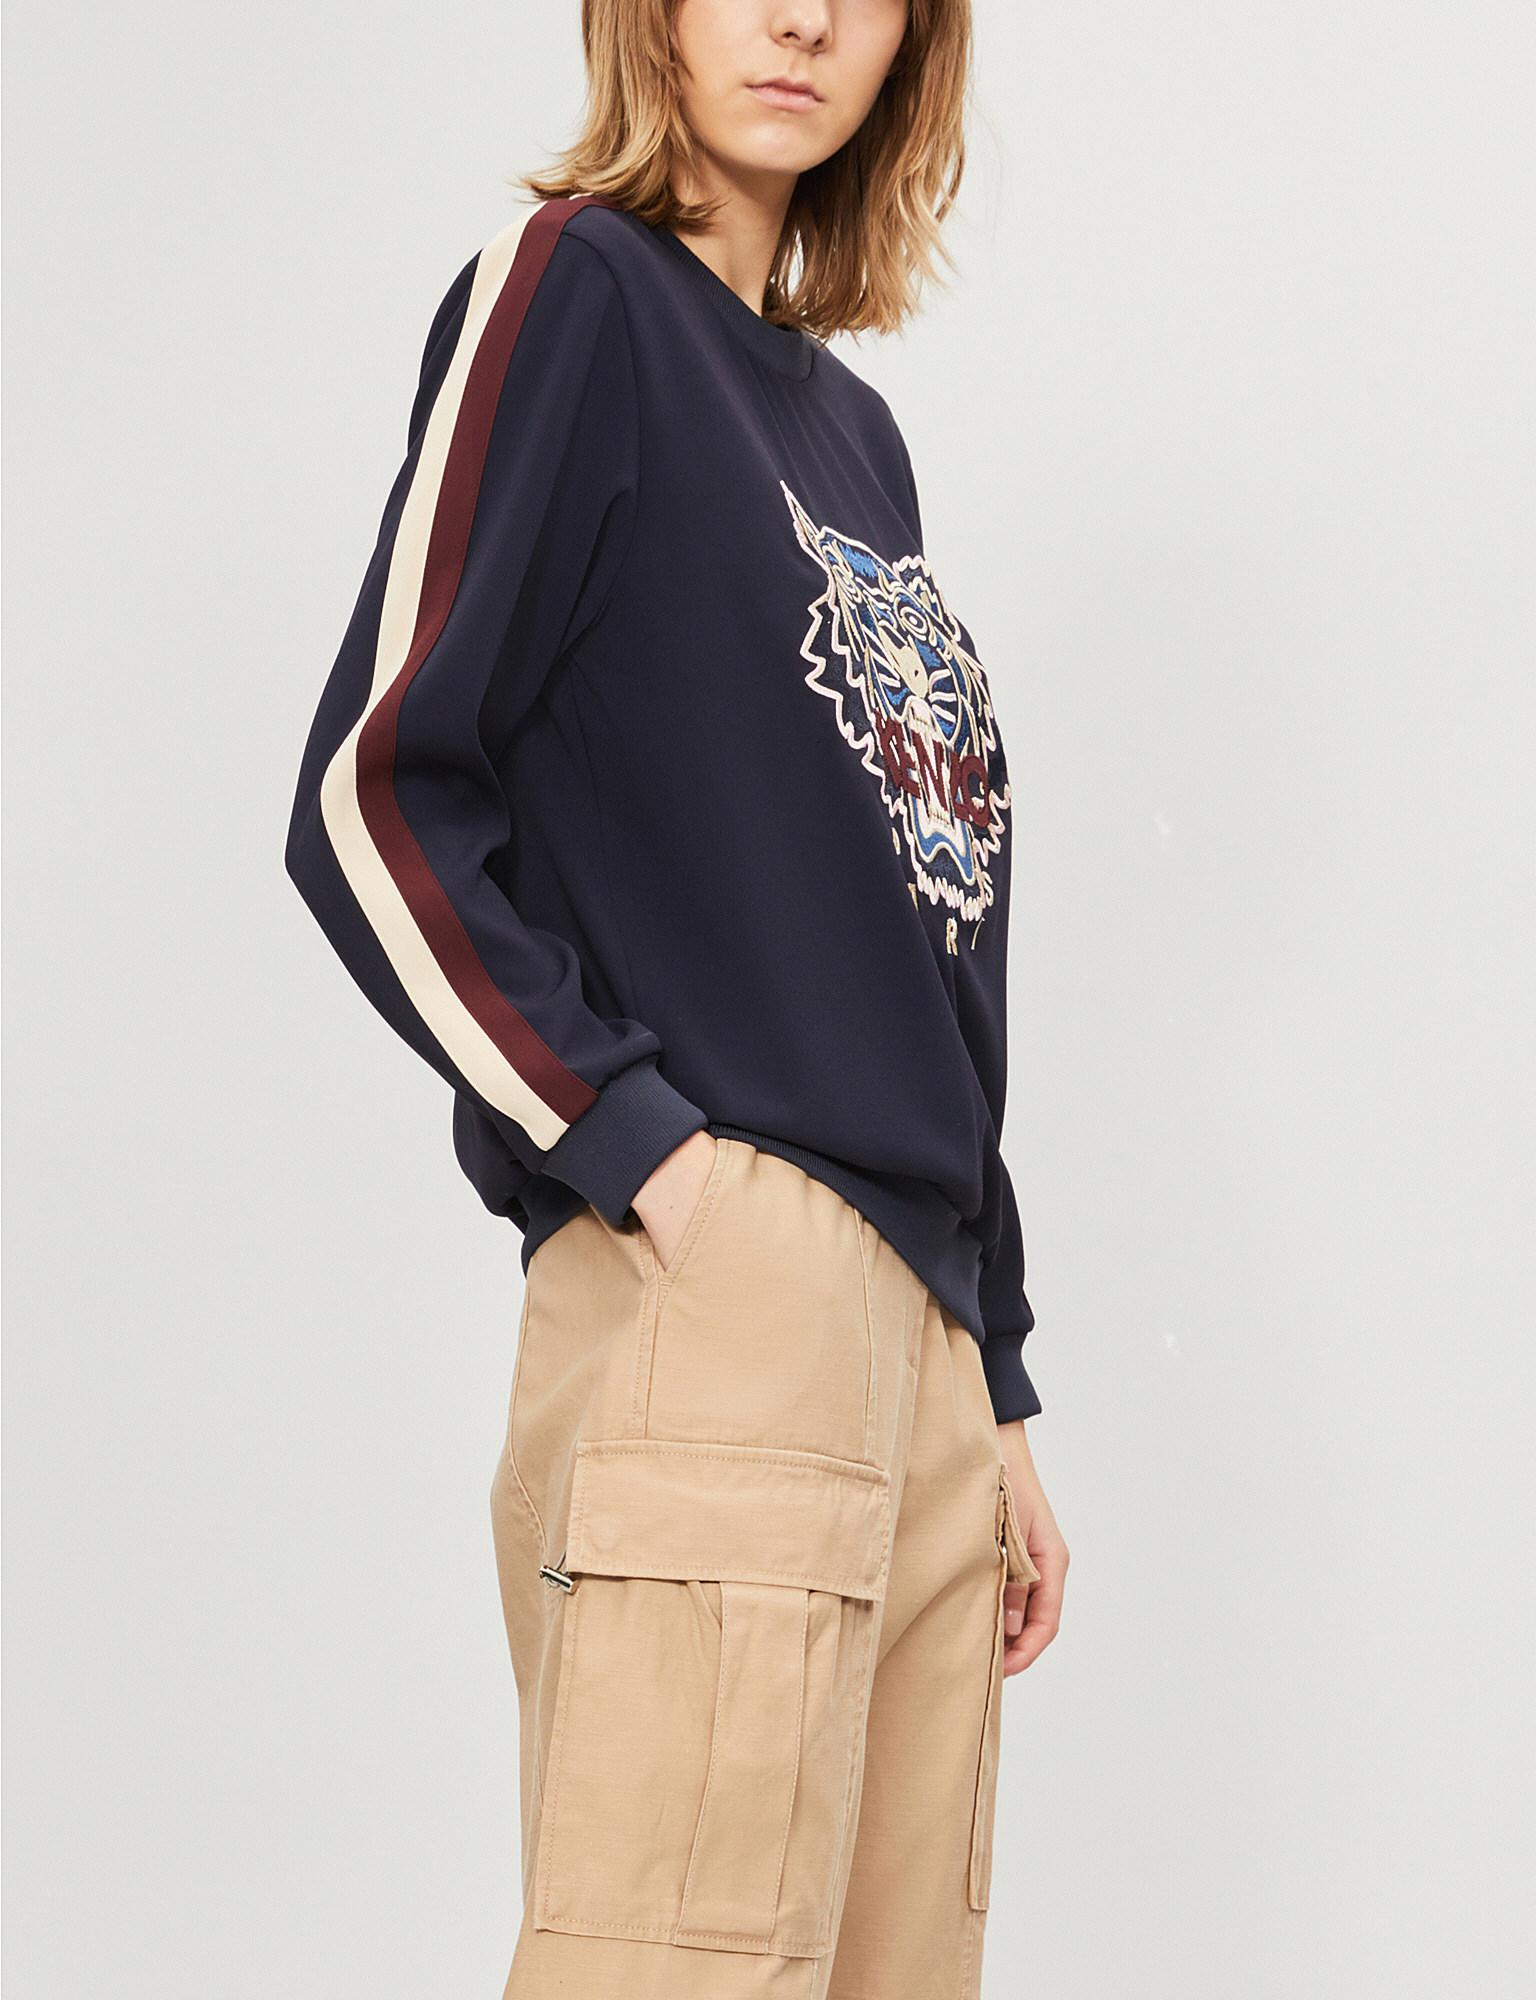 2680c1ef6 Lyst - KENZO Tiger-embroidered Crepe Sweatshirt in Blue